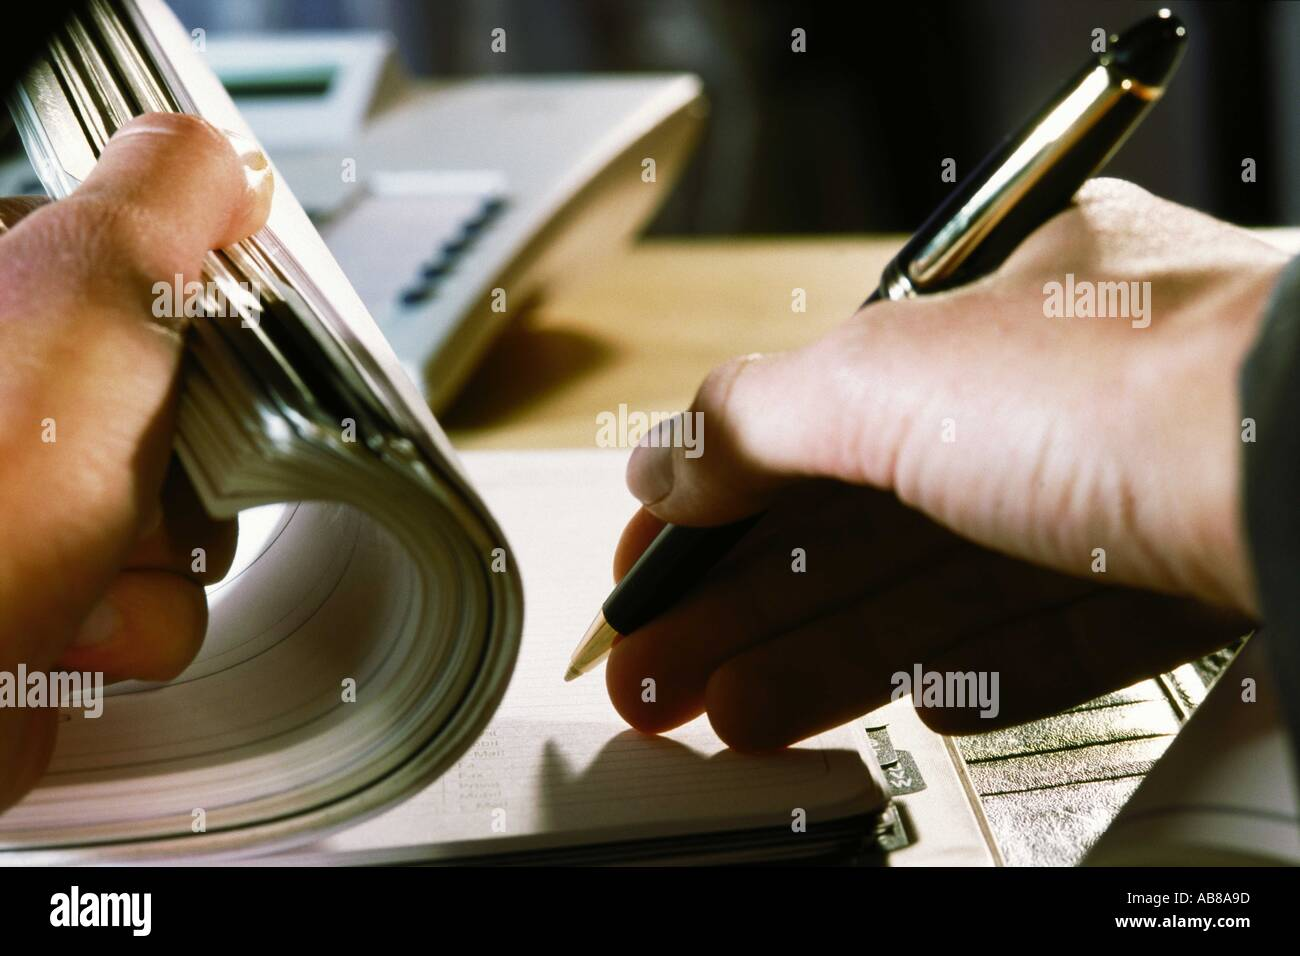 Person writing in address book - Stock Image